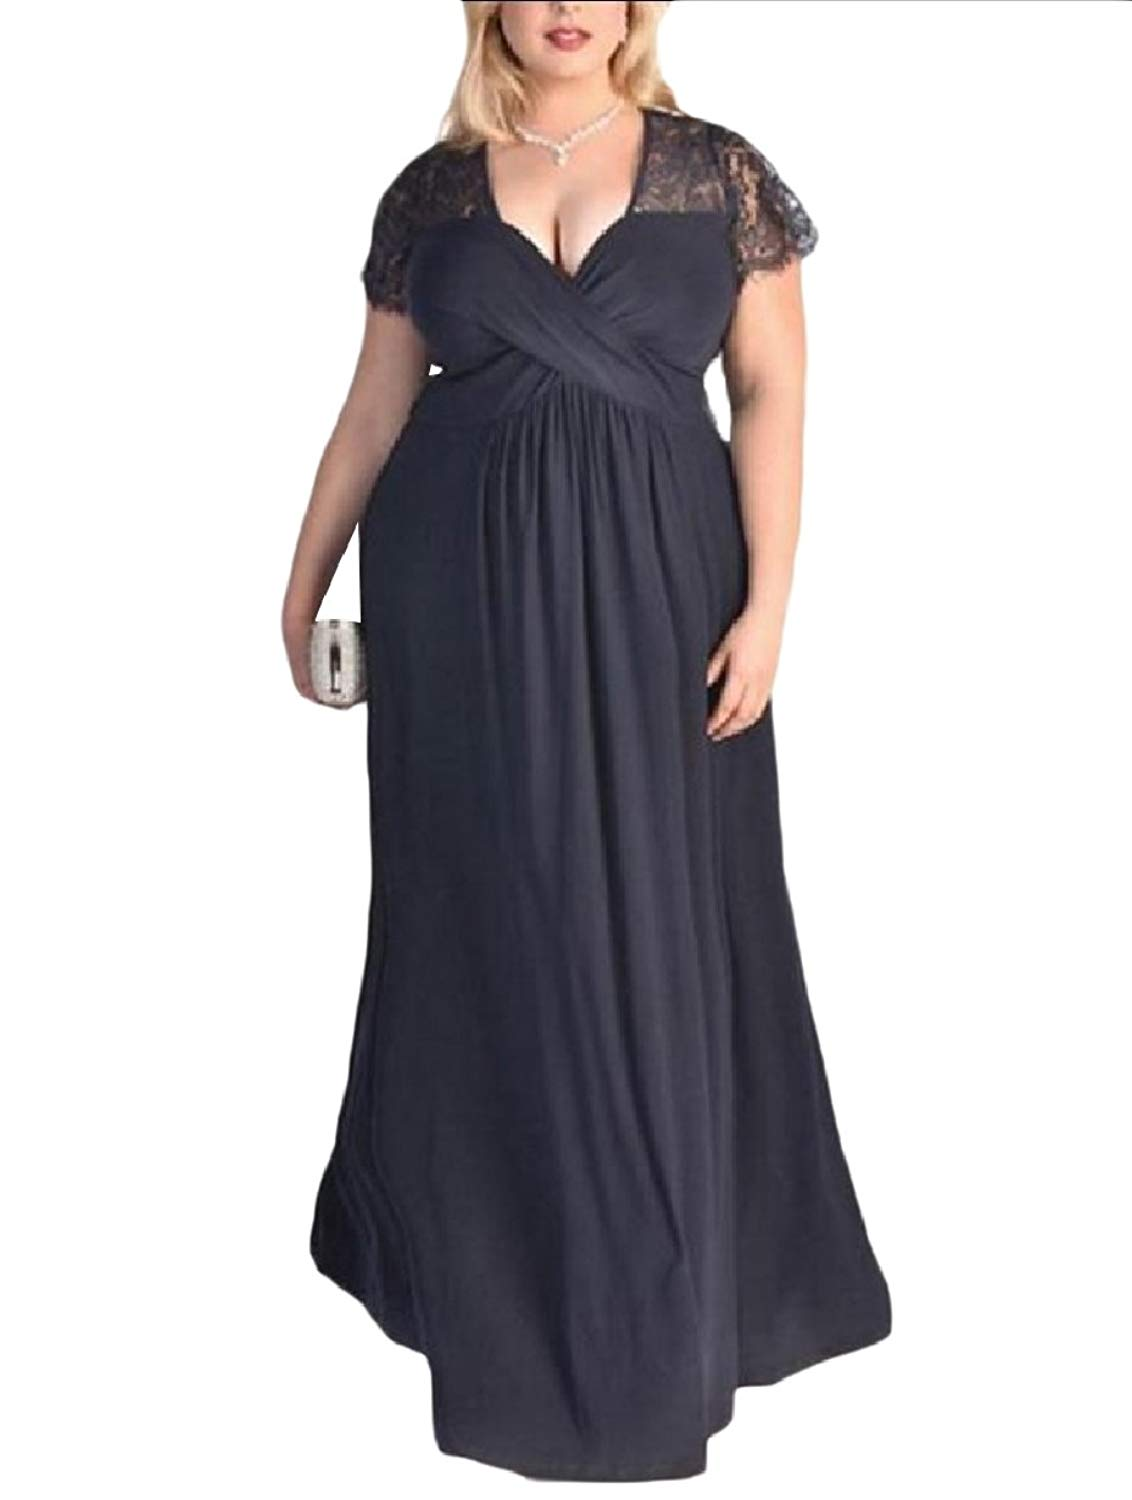 Zimaes-Women Sexy V-Neck Lace Plus-Size Swing Banquet Long Dress